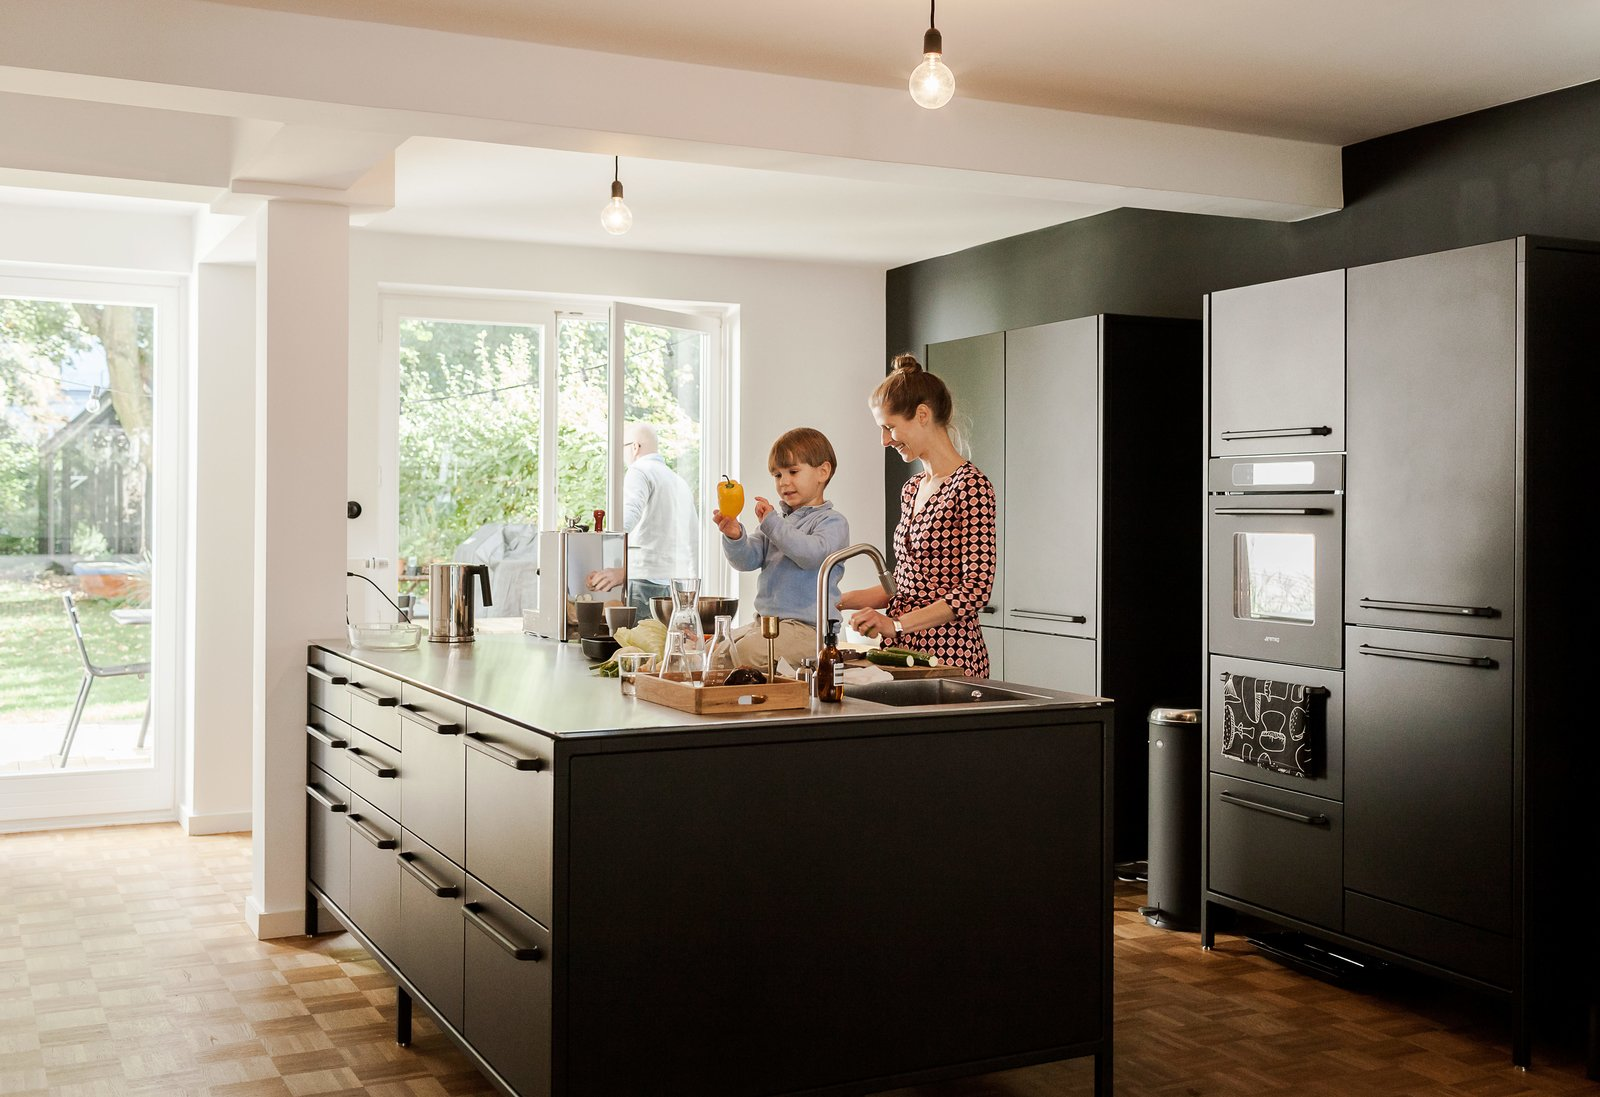 Kitchen, Refrigerator, Wall Oven, Cooktops, Colorful Cabinet, Ceiling Lighting, Pendant Lighting, and Medium Hardwood Floor  Photo 1 of 12 in We Can't Get Enough of This German Apartment's Sleek Matte-Black Kitchen